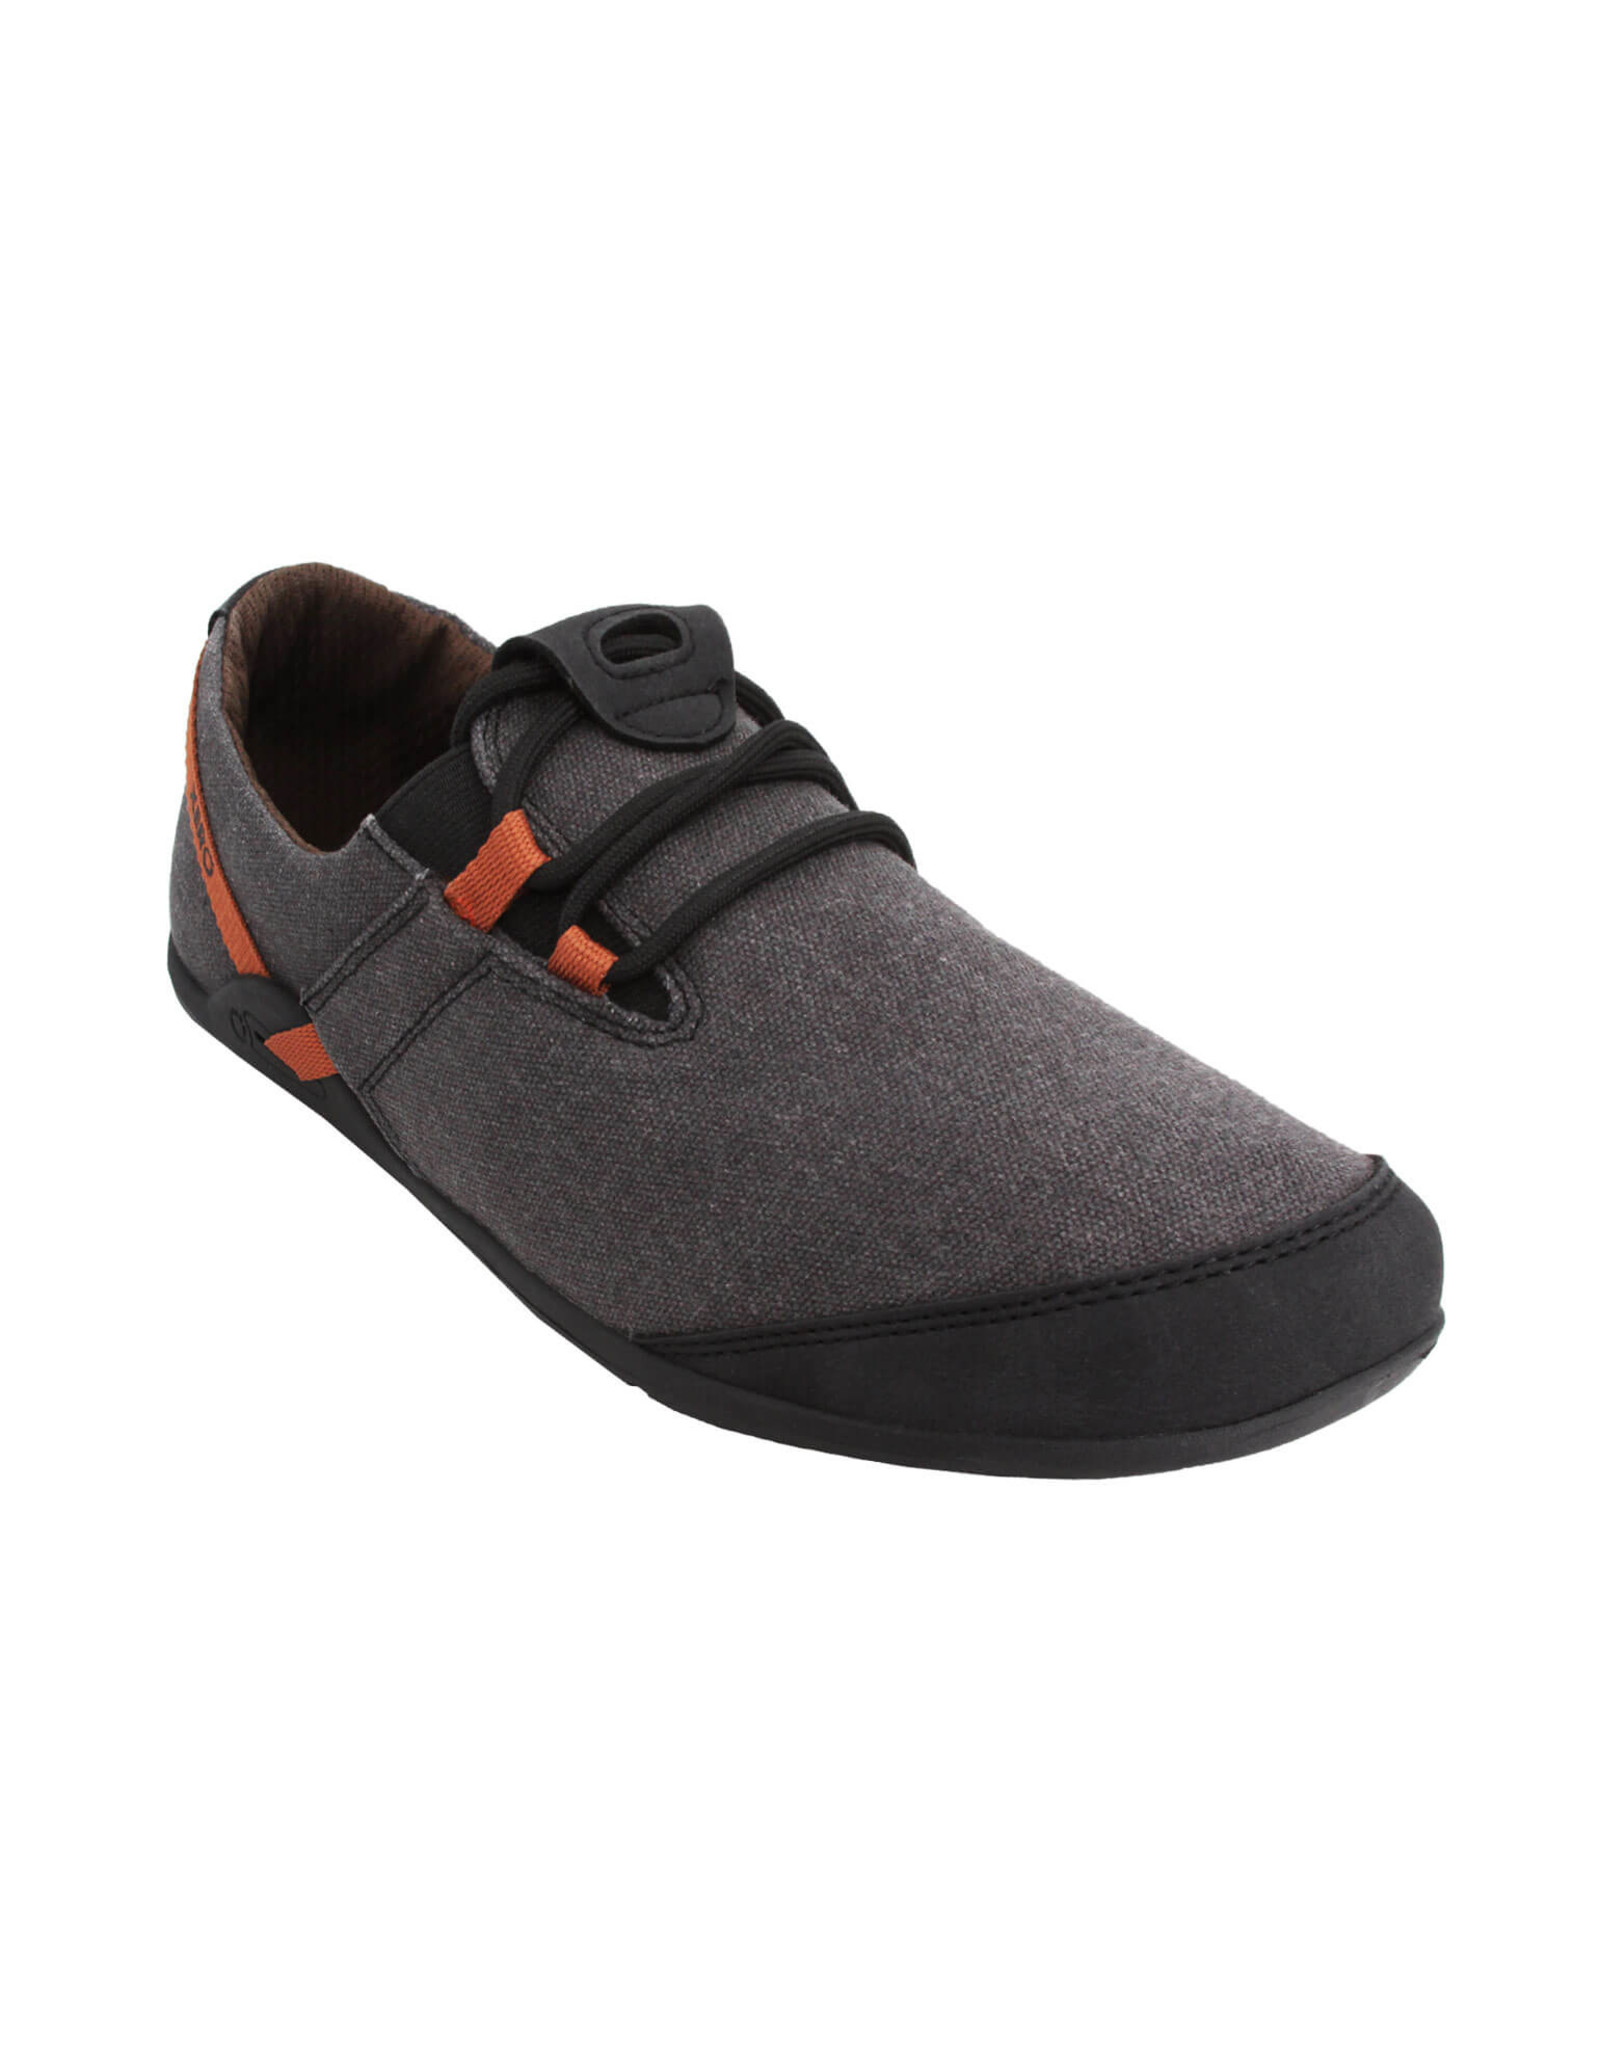 XERO MEN'S HANA-BLACK/RUST